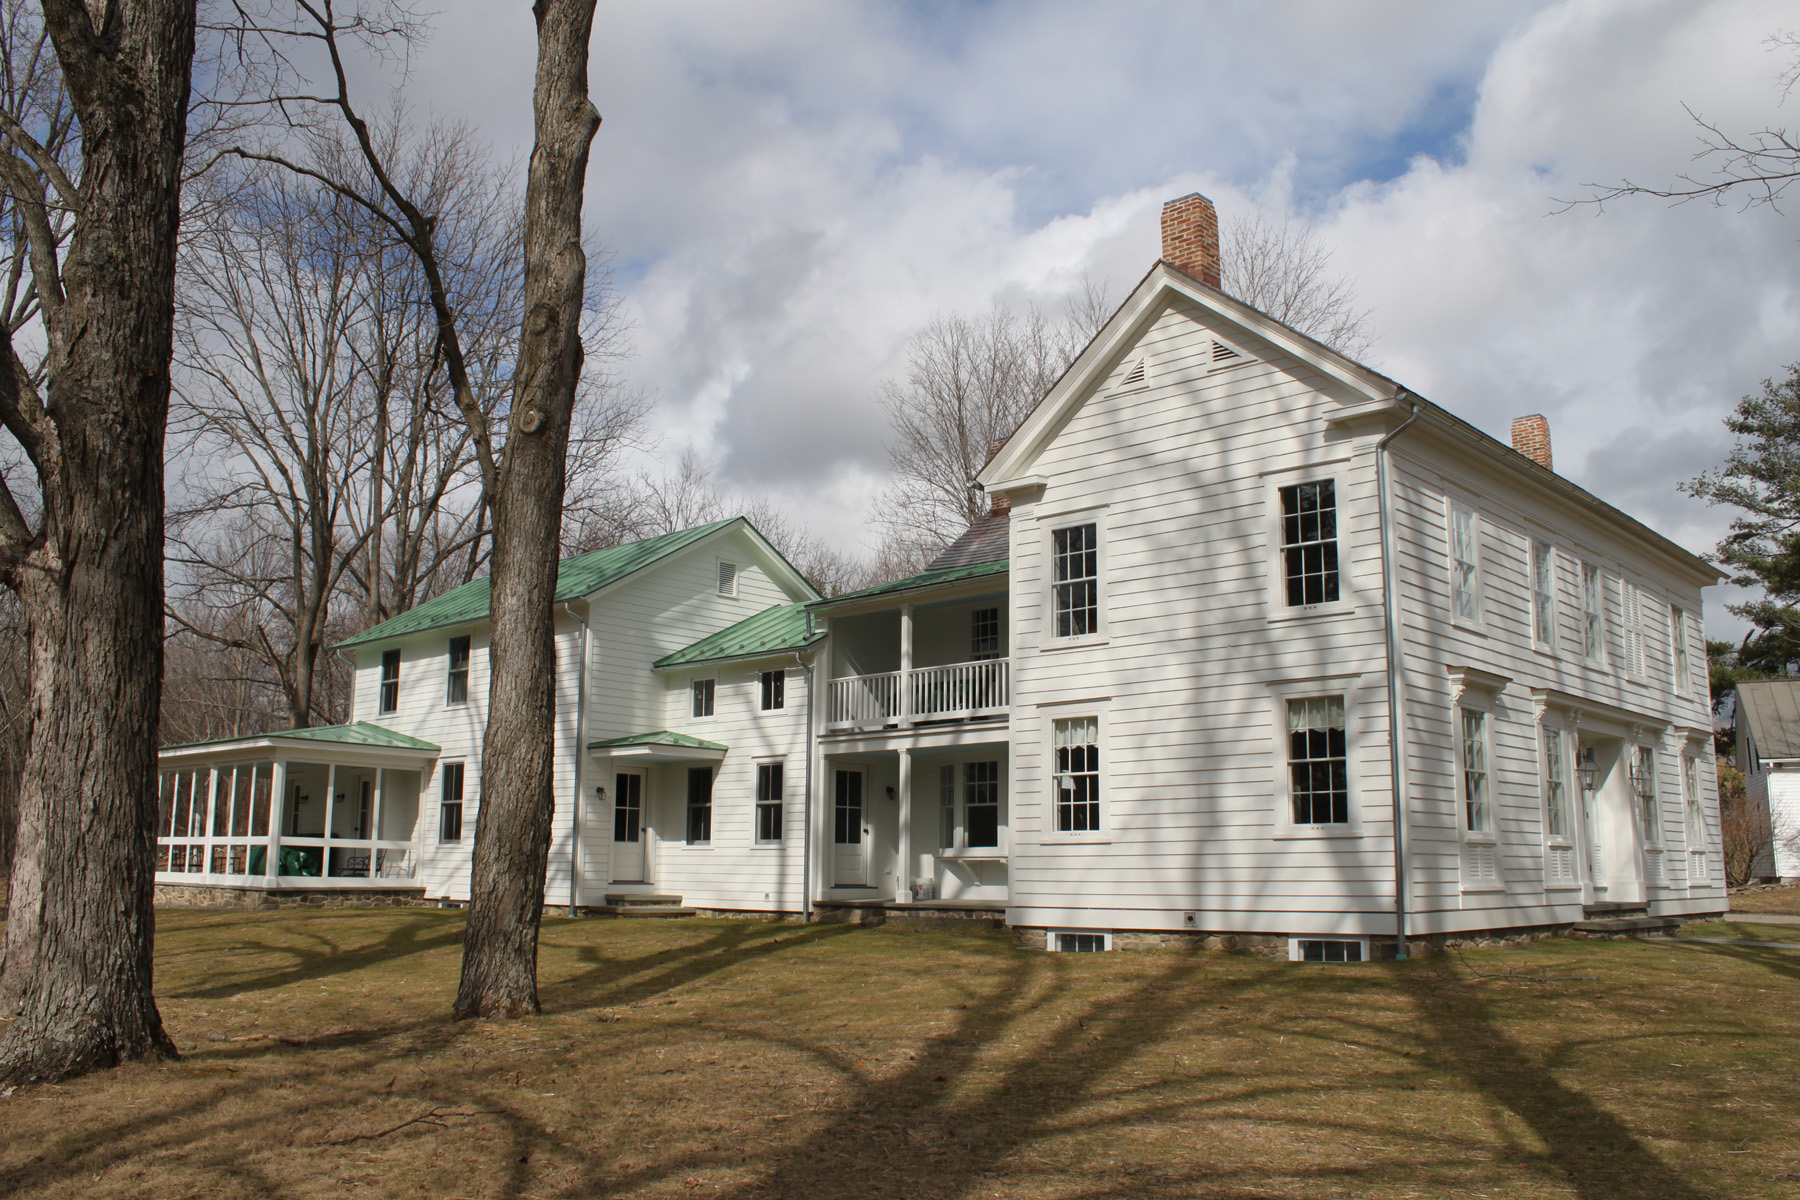 New Concord B&B opened in 2017